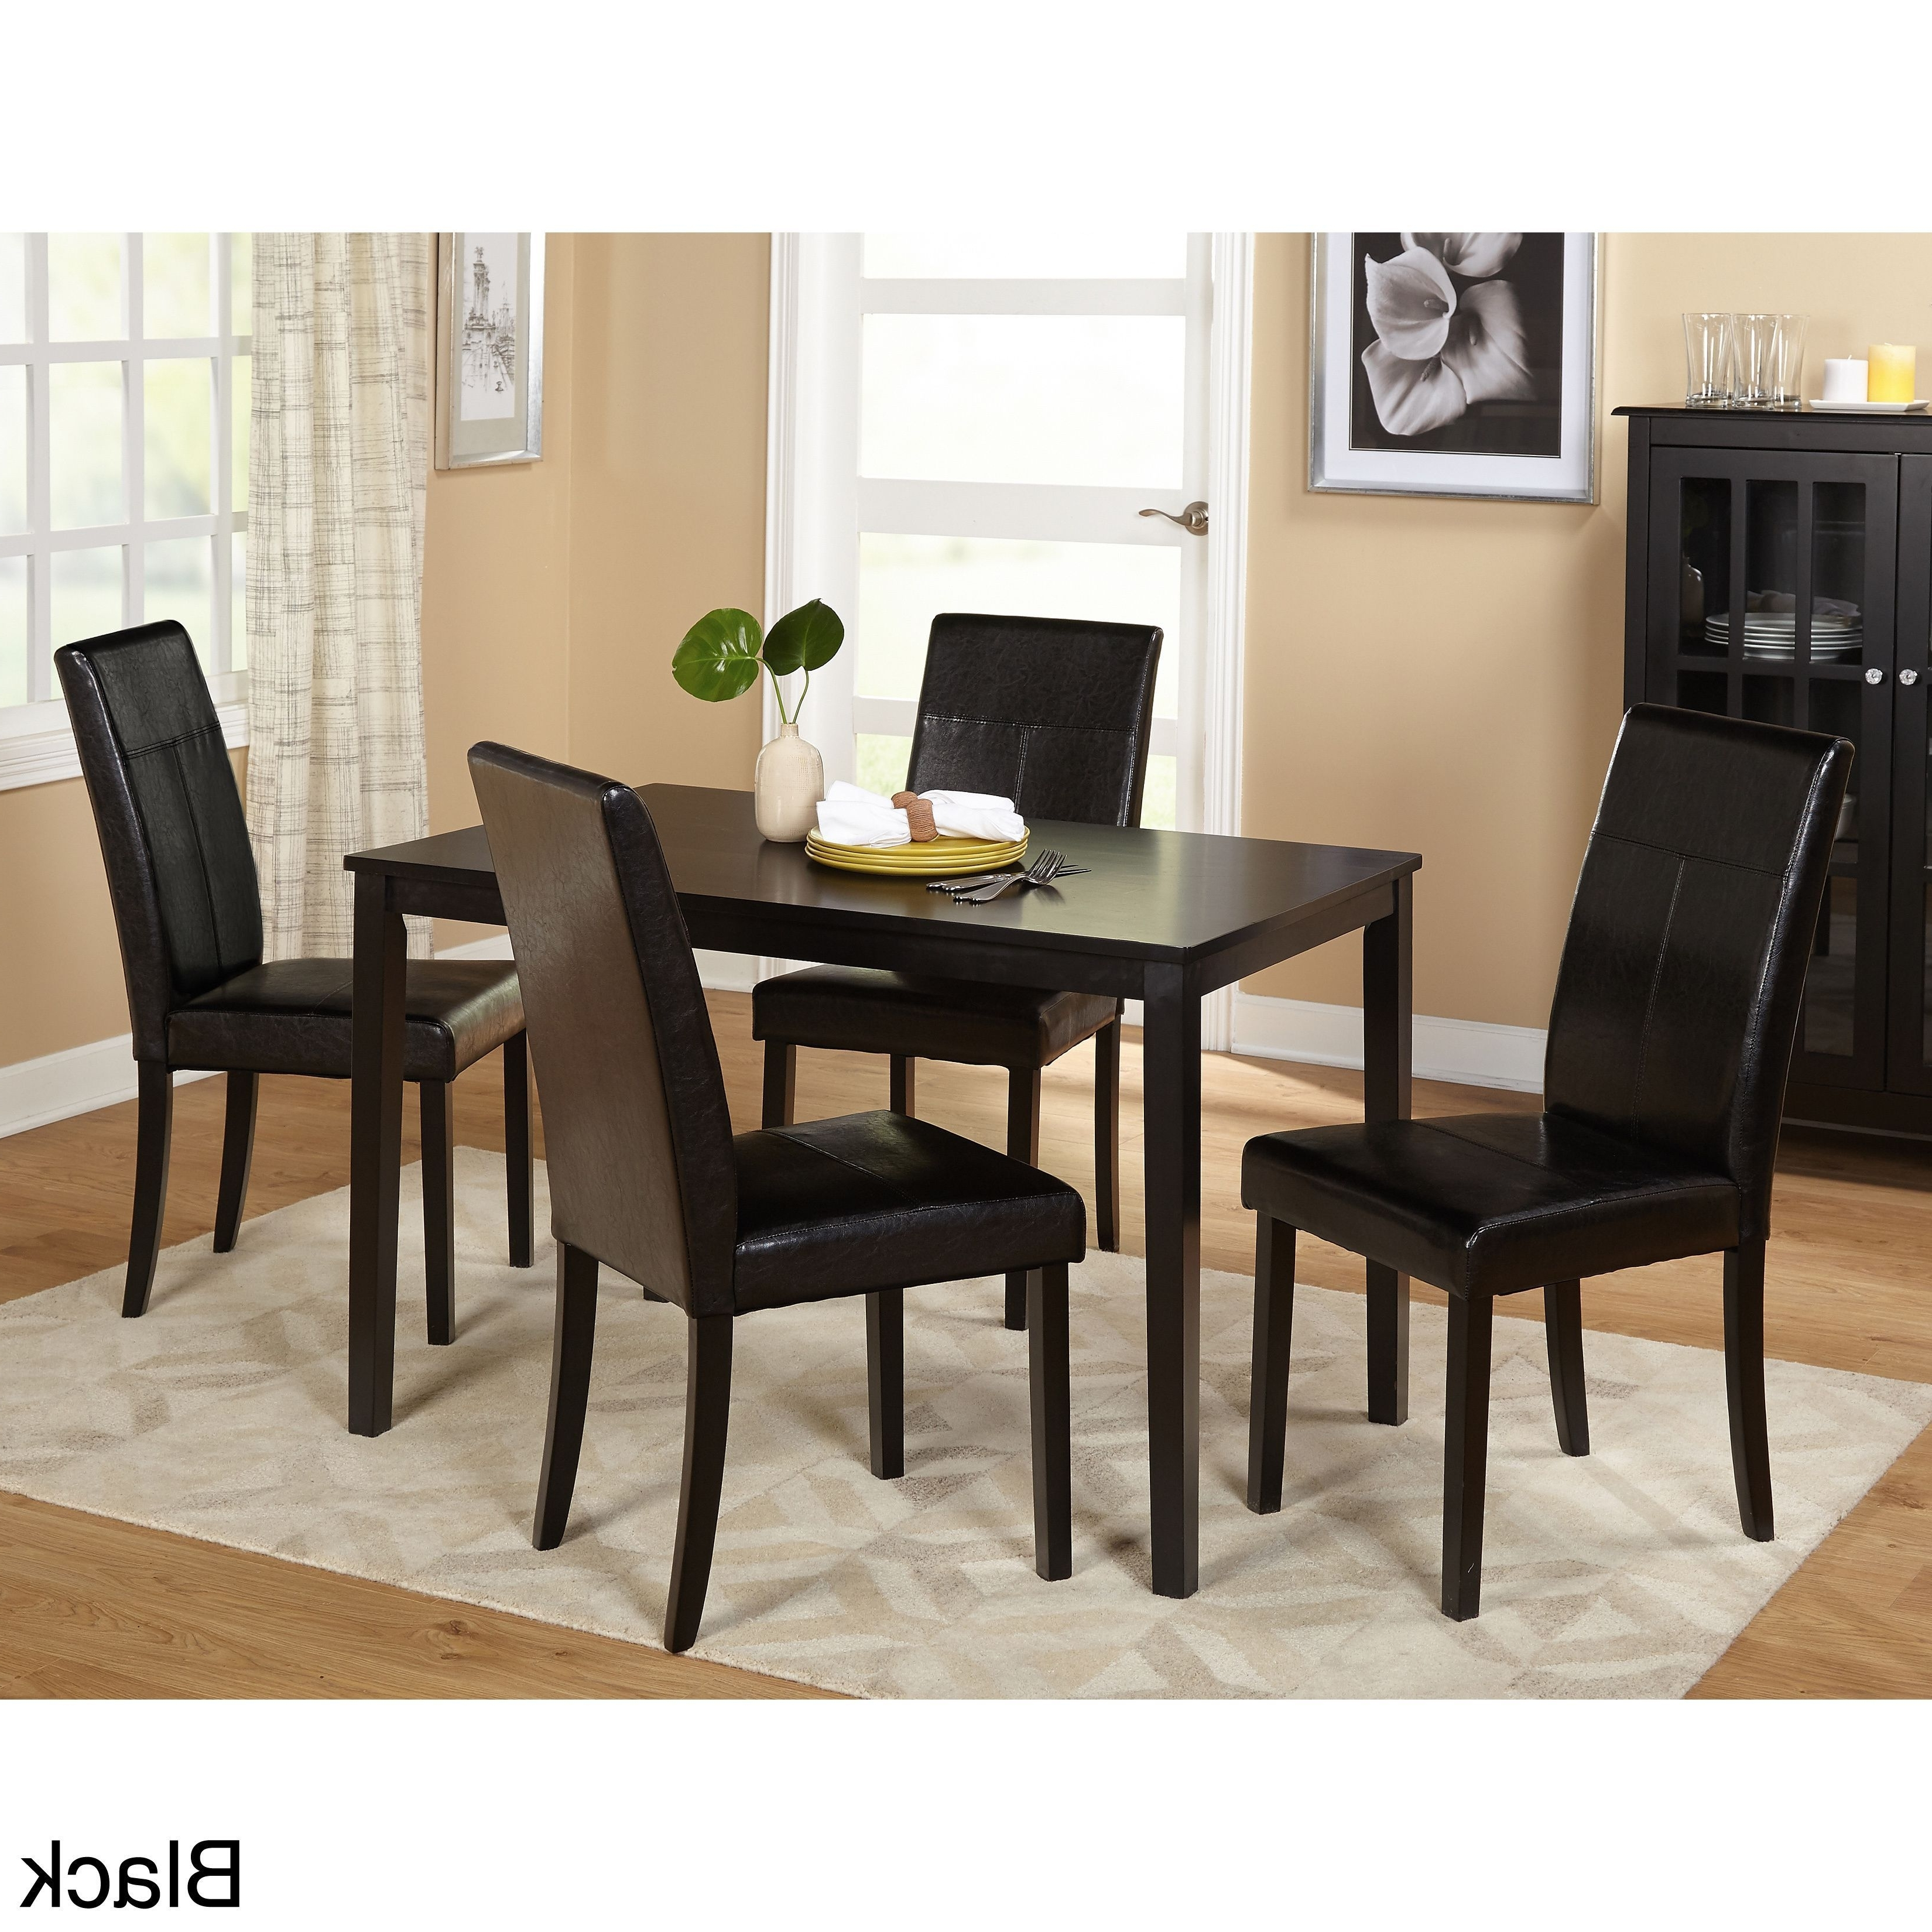 Toby 7 Piece Dining Setorren Ellis Reviews Throughout 2017 Jaxon 7 Piece Rectangle Dining Sets With Upholstered Chairs (View 16 of 25)